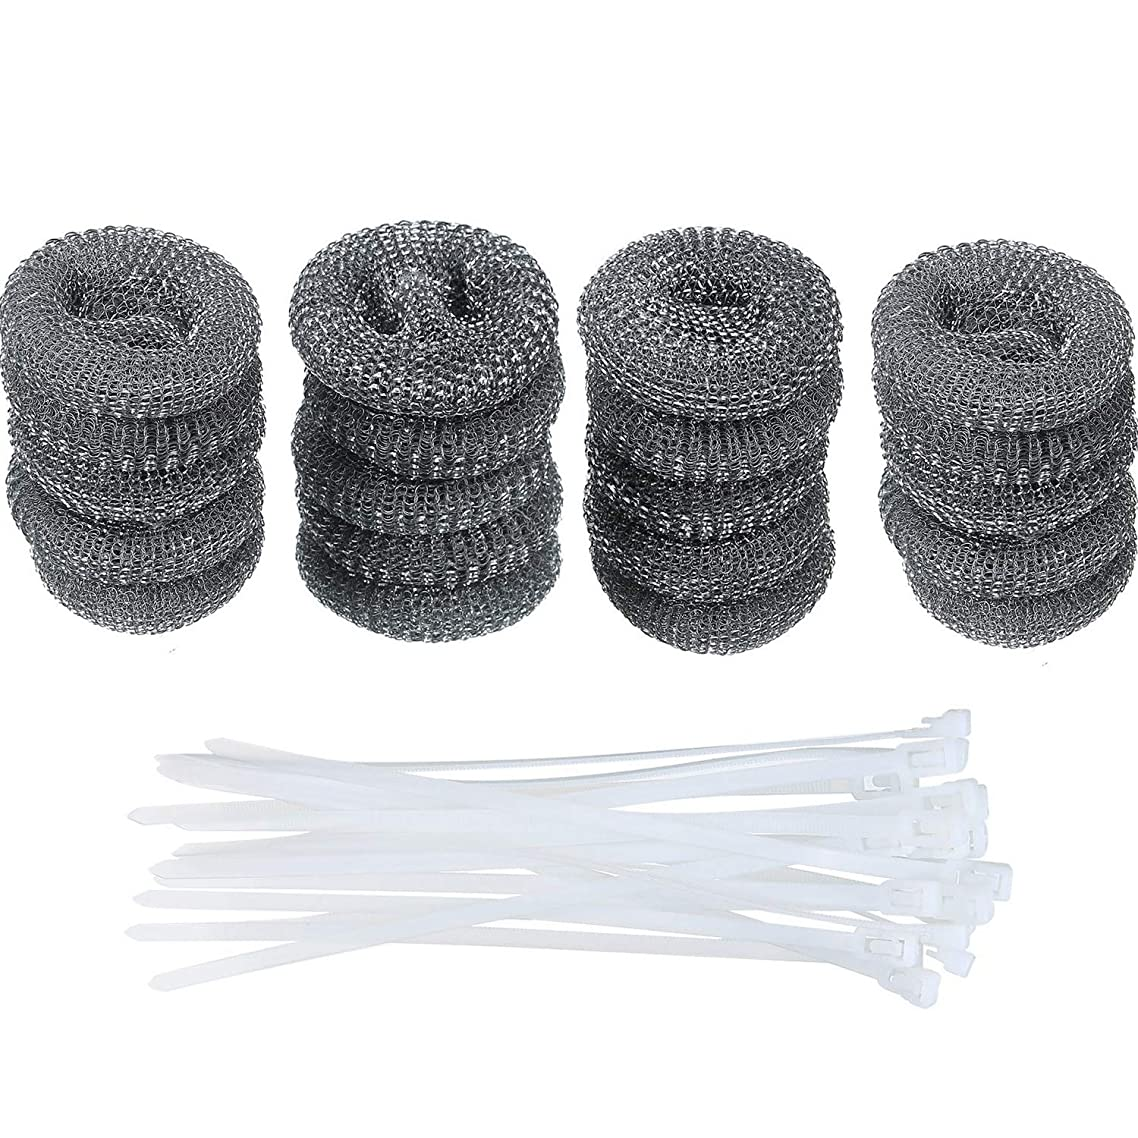 Zoleland 20 Pack Lint Traps Washing Machine Lint Trap Snare Laundry Mesh Washer Hose Filter and 20 Pieces Cable Ties